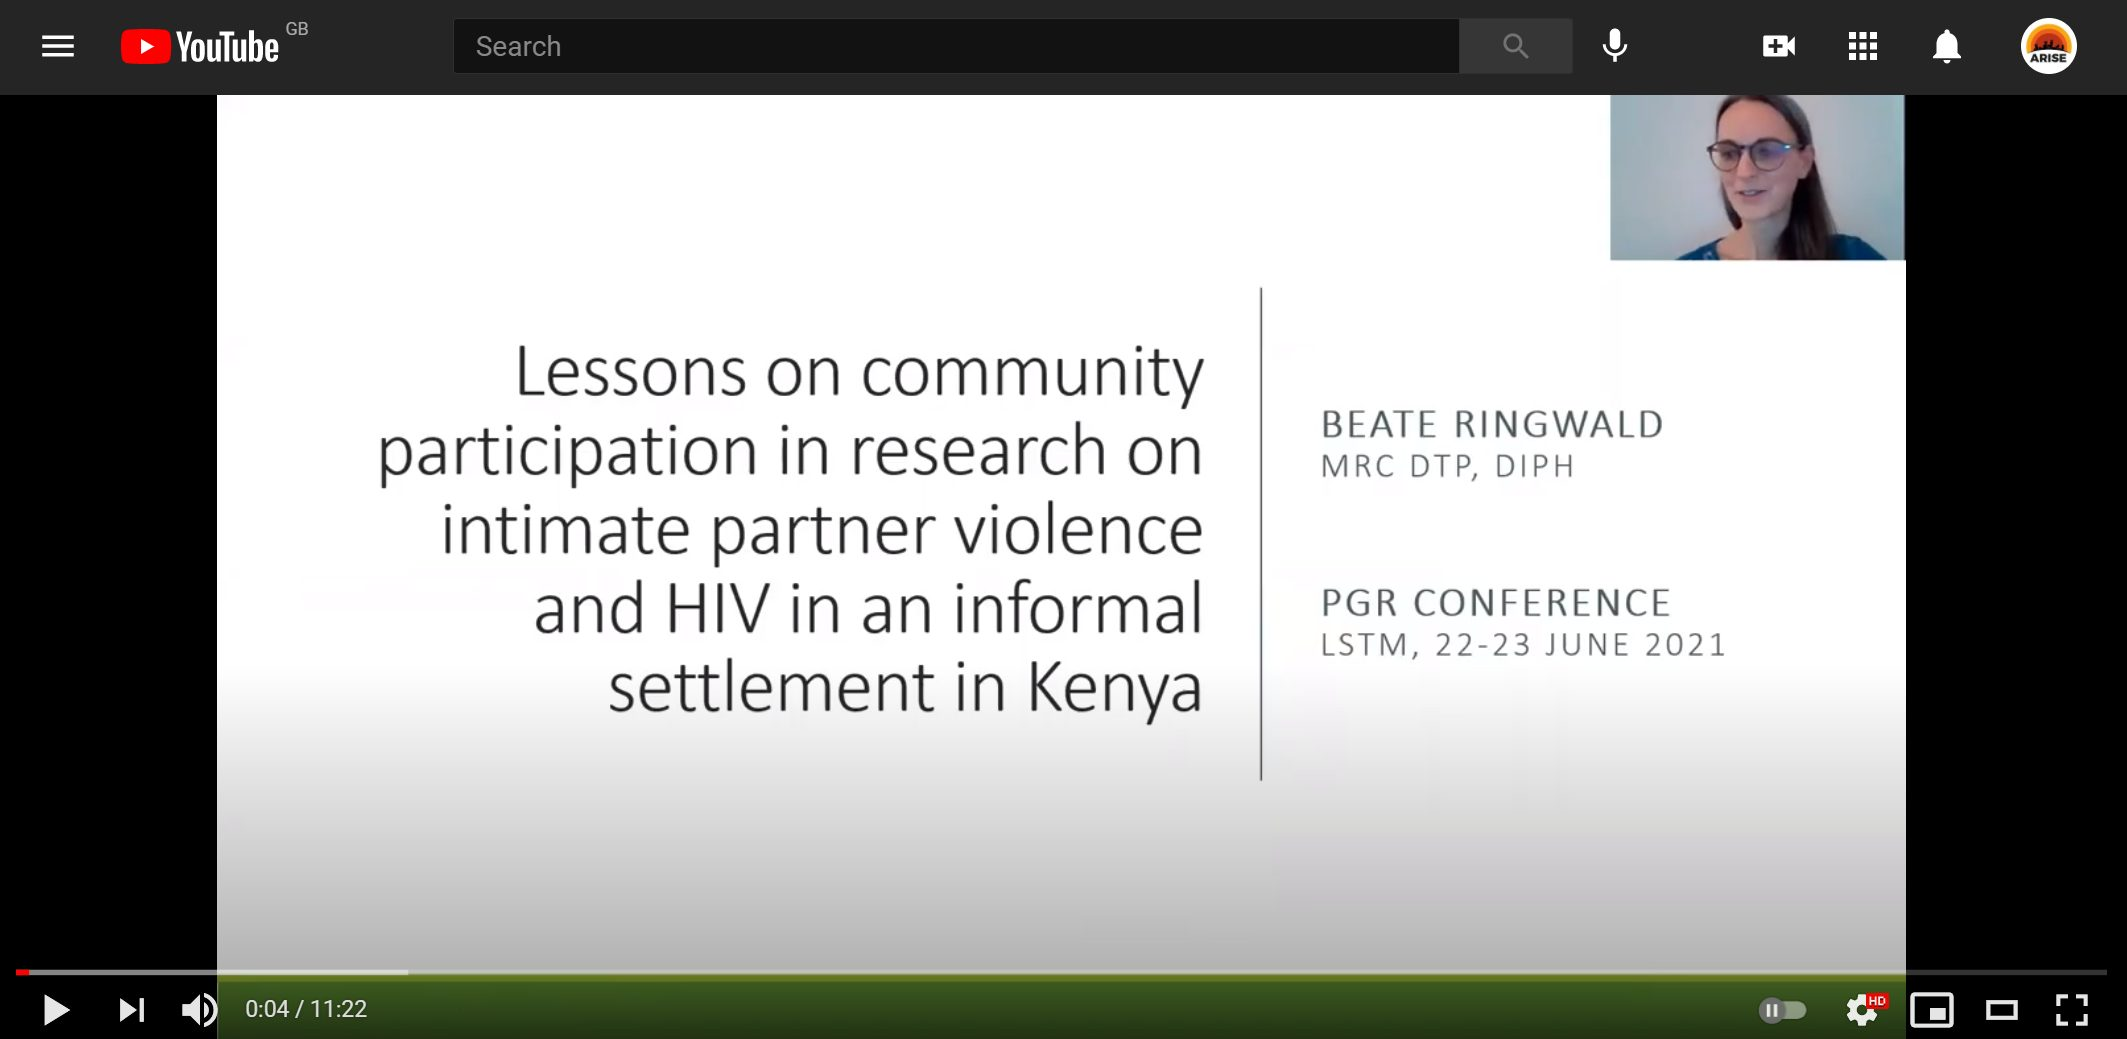 Participation in research on intimate partner violence and HIV